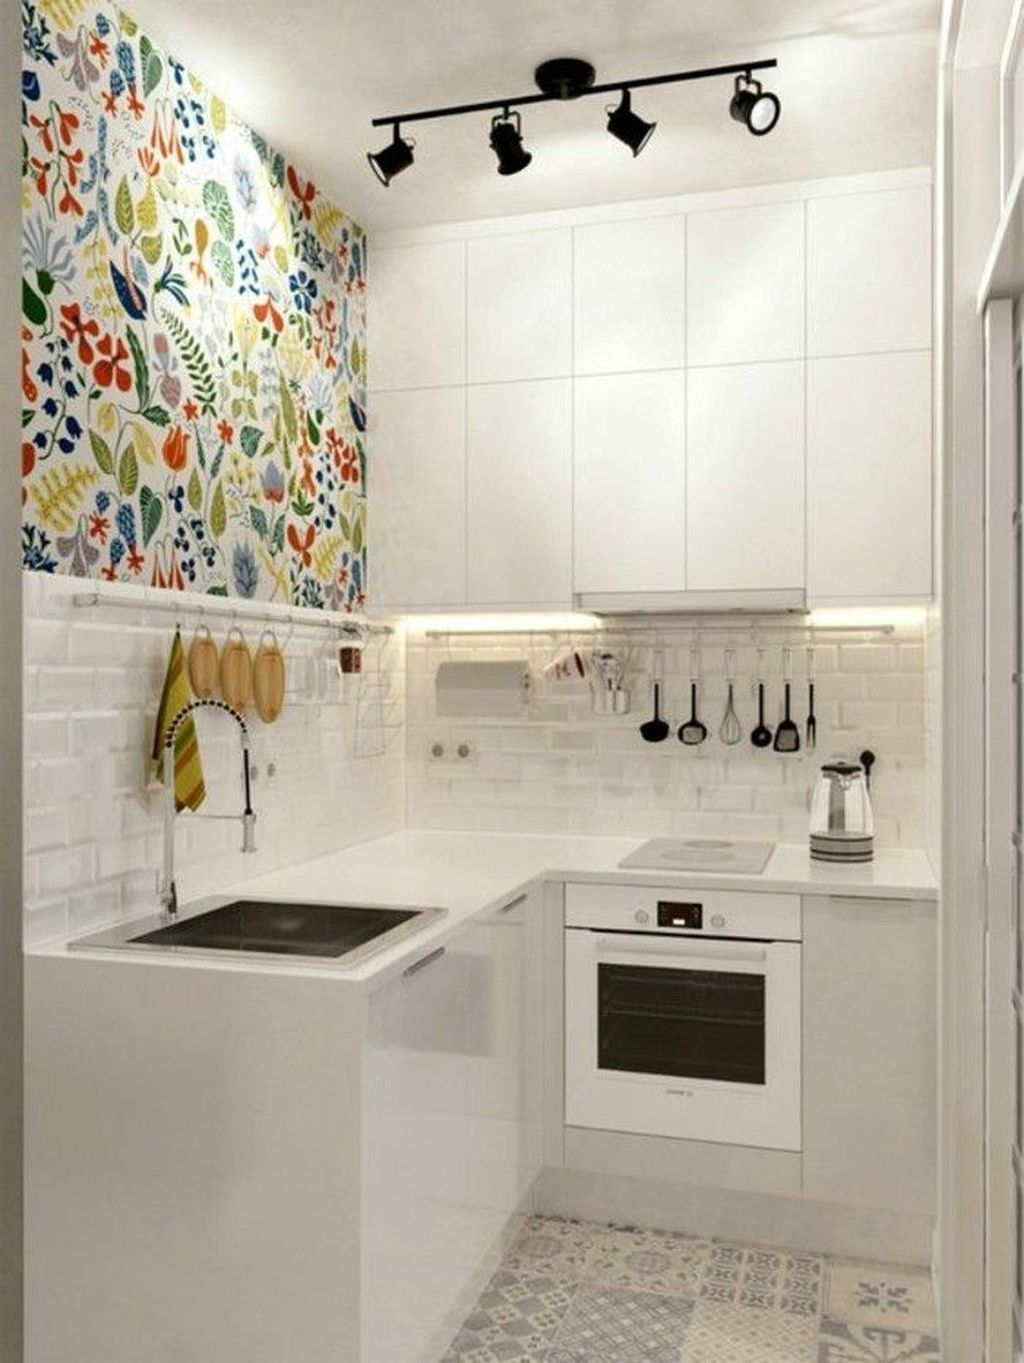 44 Awesome Small Apartment Kitchen Design Ideas Small Apartment Kitchen Decor Tiny Kitchen Design Kitchen Remodel Layout